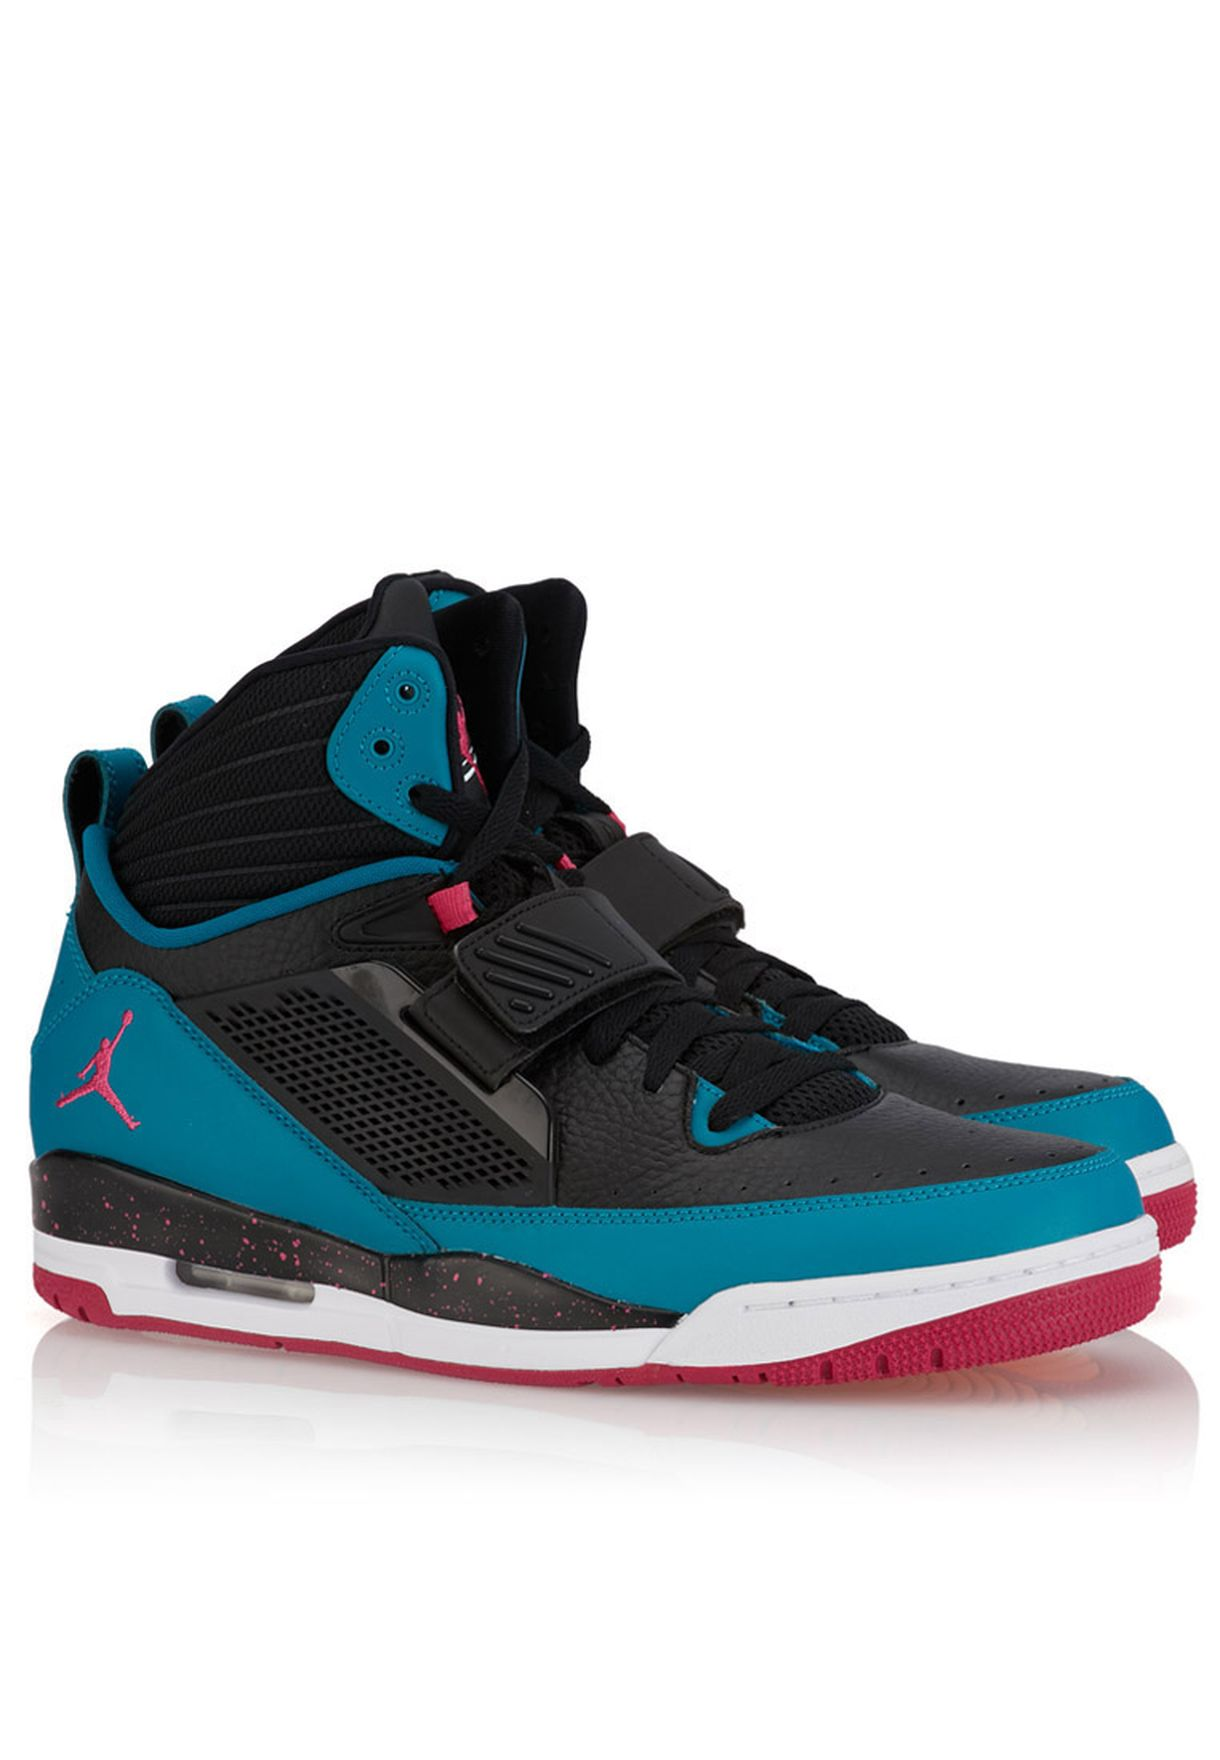 85066487df6 Shop Nike multicolor Jordan Flight 97 654265-019 for Men in Qatar -  NI727SH24ZOH